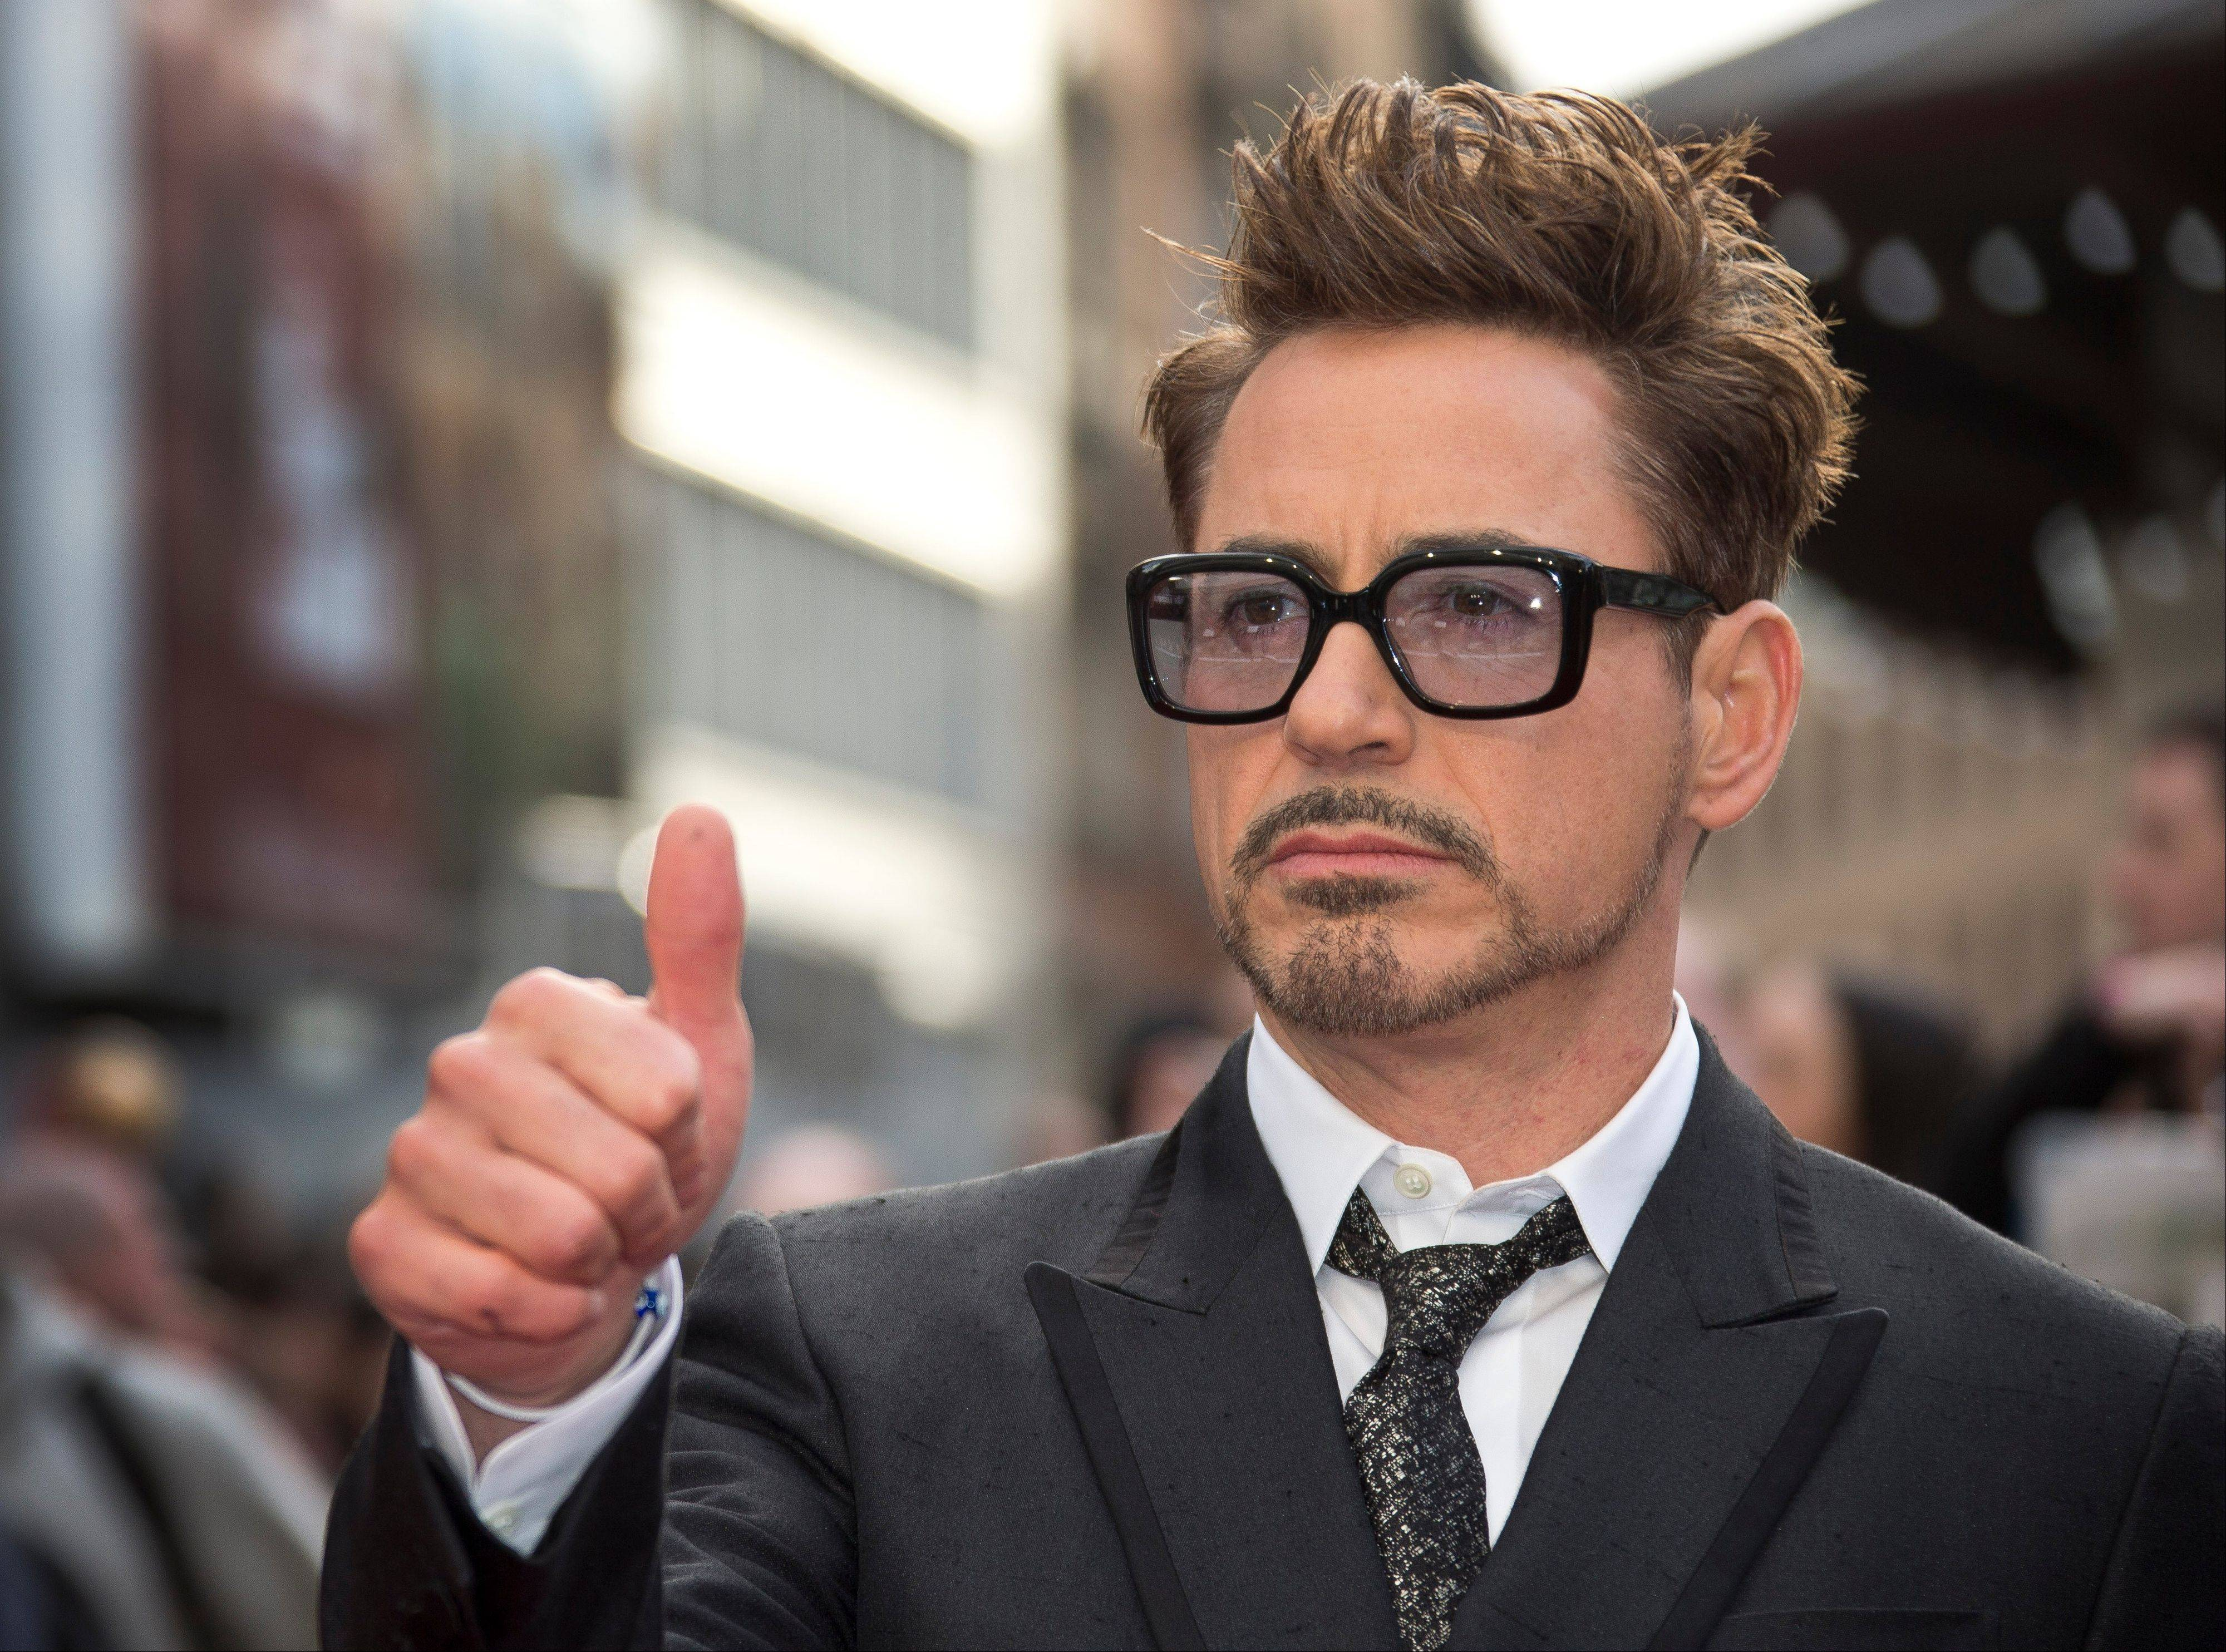 Marvel announced Thursday that Robert Downey Jr. will reprise his role as Iron Man/Tony Stark for both �The Avengers 2� and �The Avengers 3.�